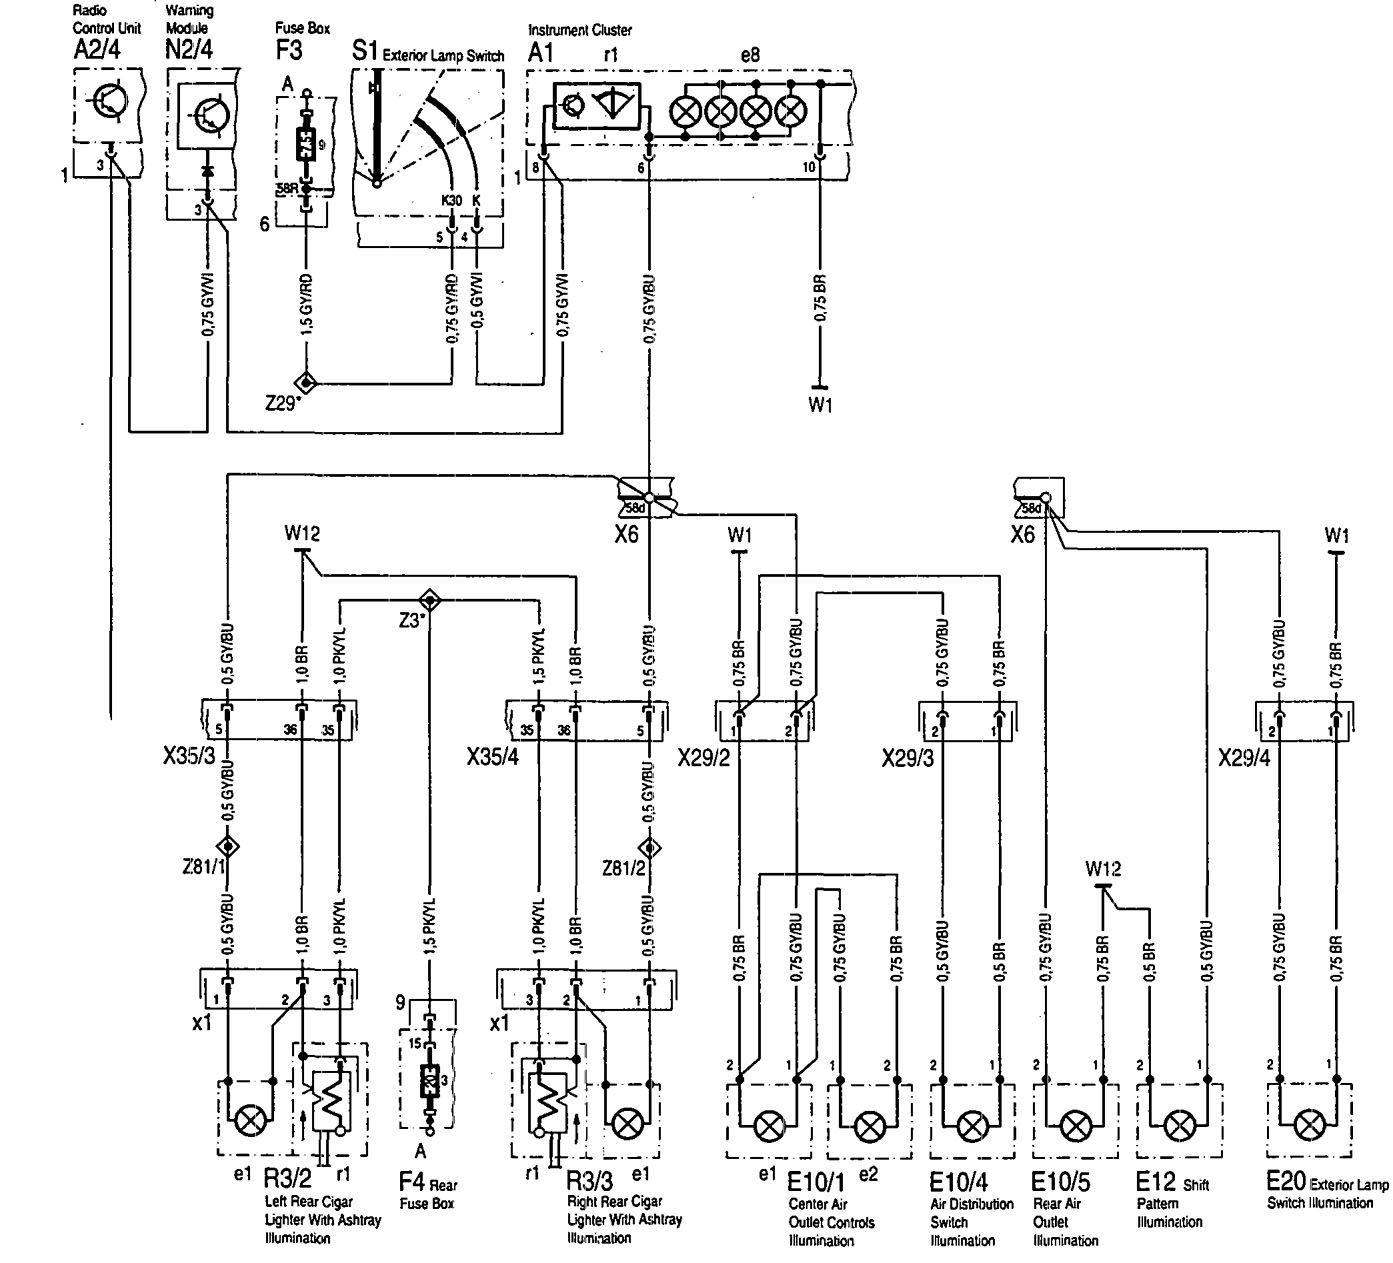 Mercedes Benz 300sd Wiring Diagram Simple Guide About 1992 Engine Wires 1993 Diagrams